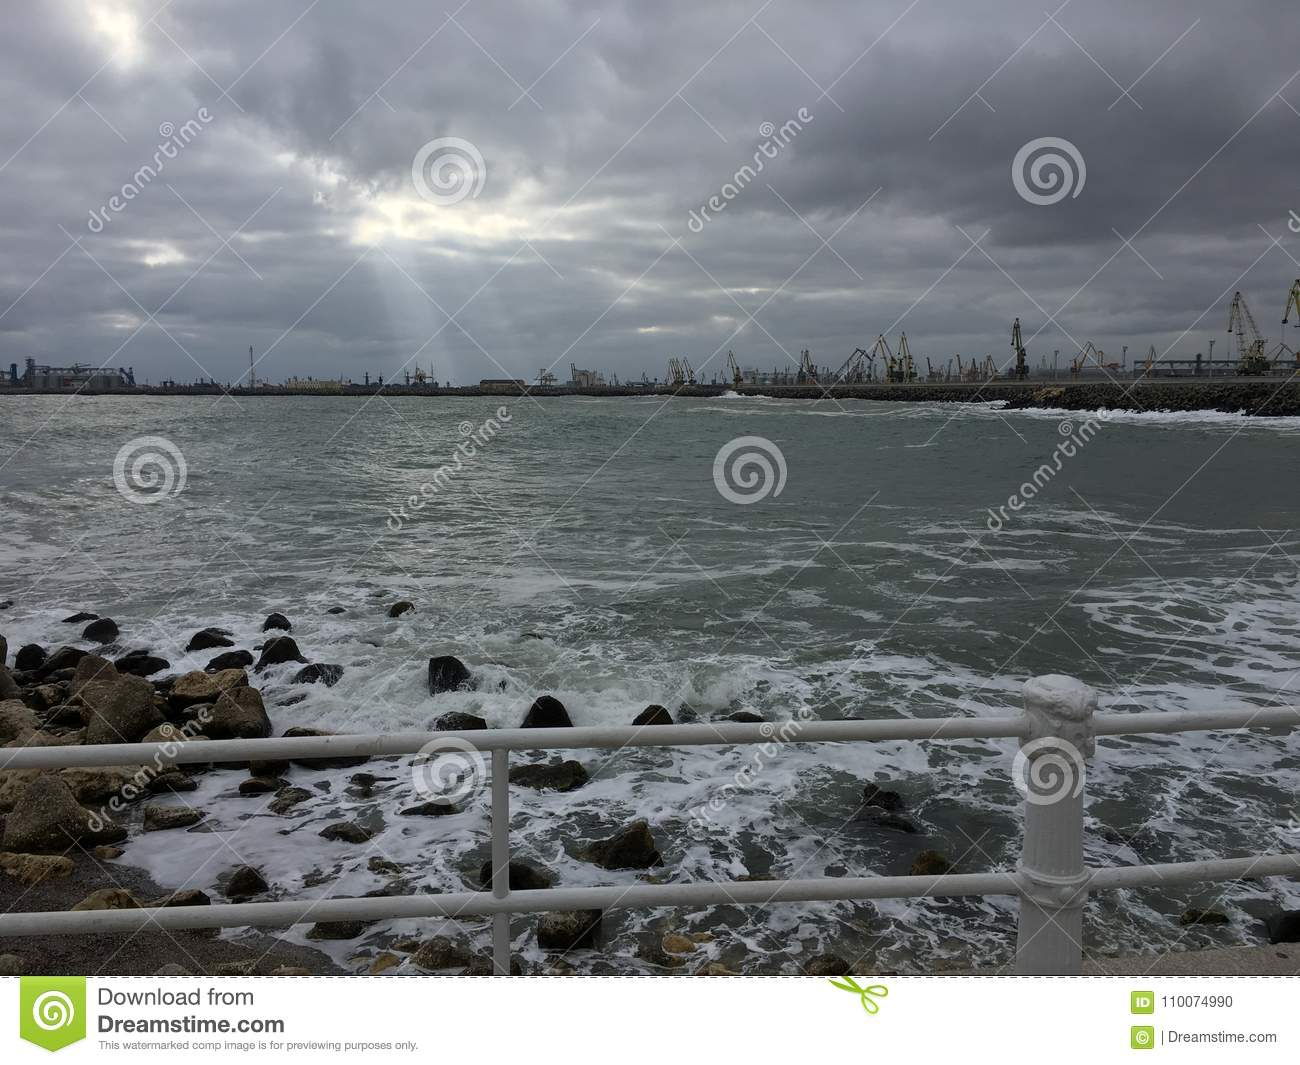 Stormy Black Sea in winter